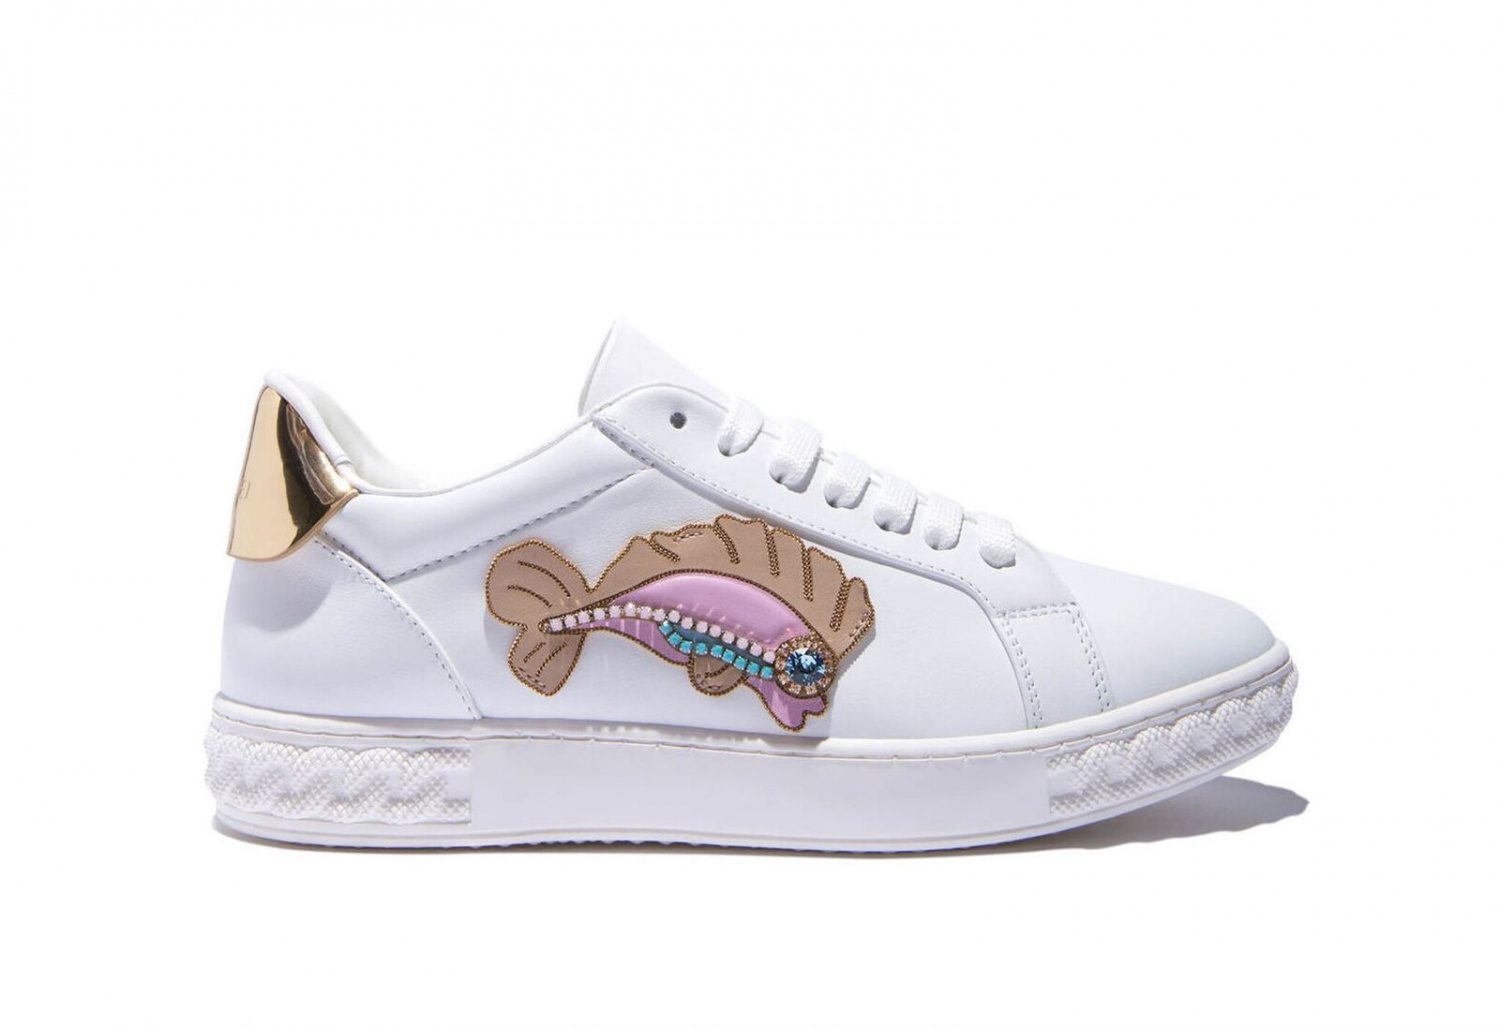 Casadei released sneakers with fish